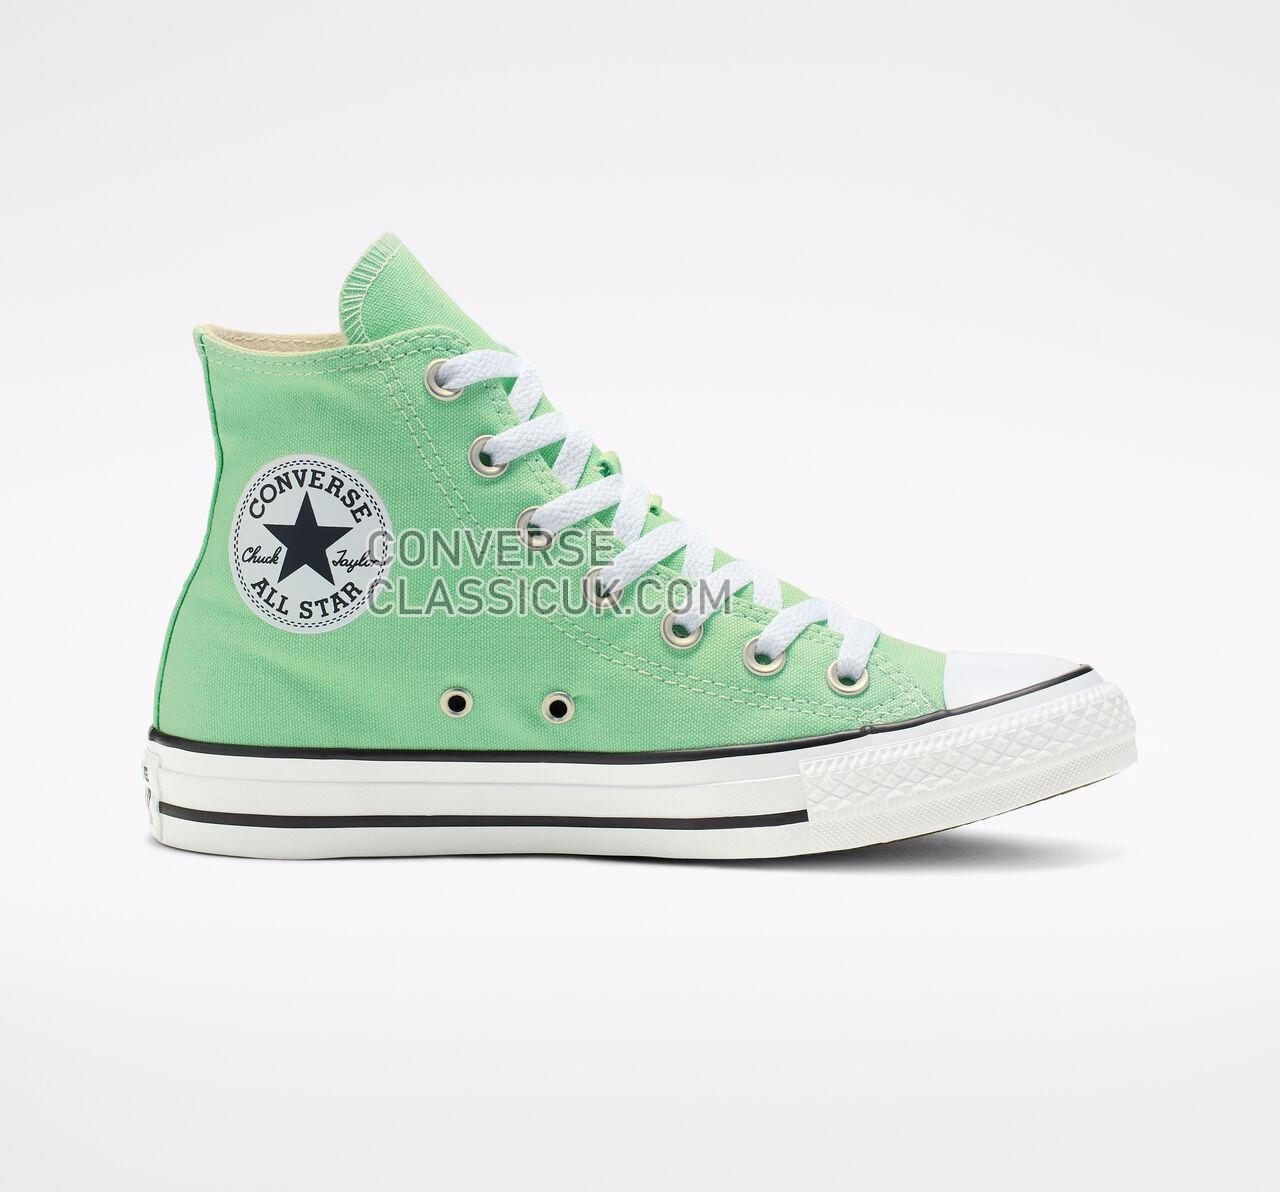 Converse Chuck Taylor All Star Seasonal Color High Top Mens Womens Unisex 164396F Aphid Green Shoes